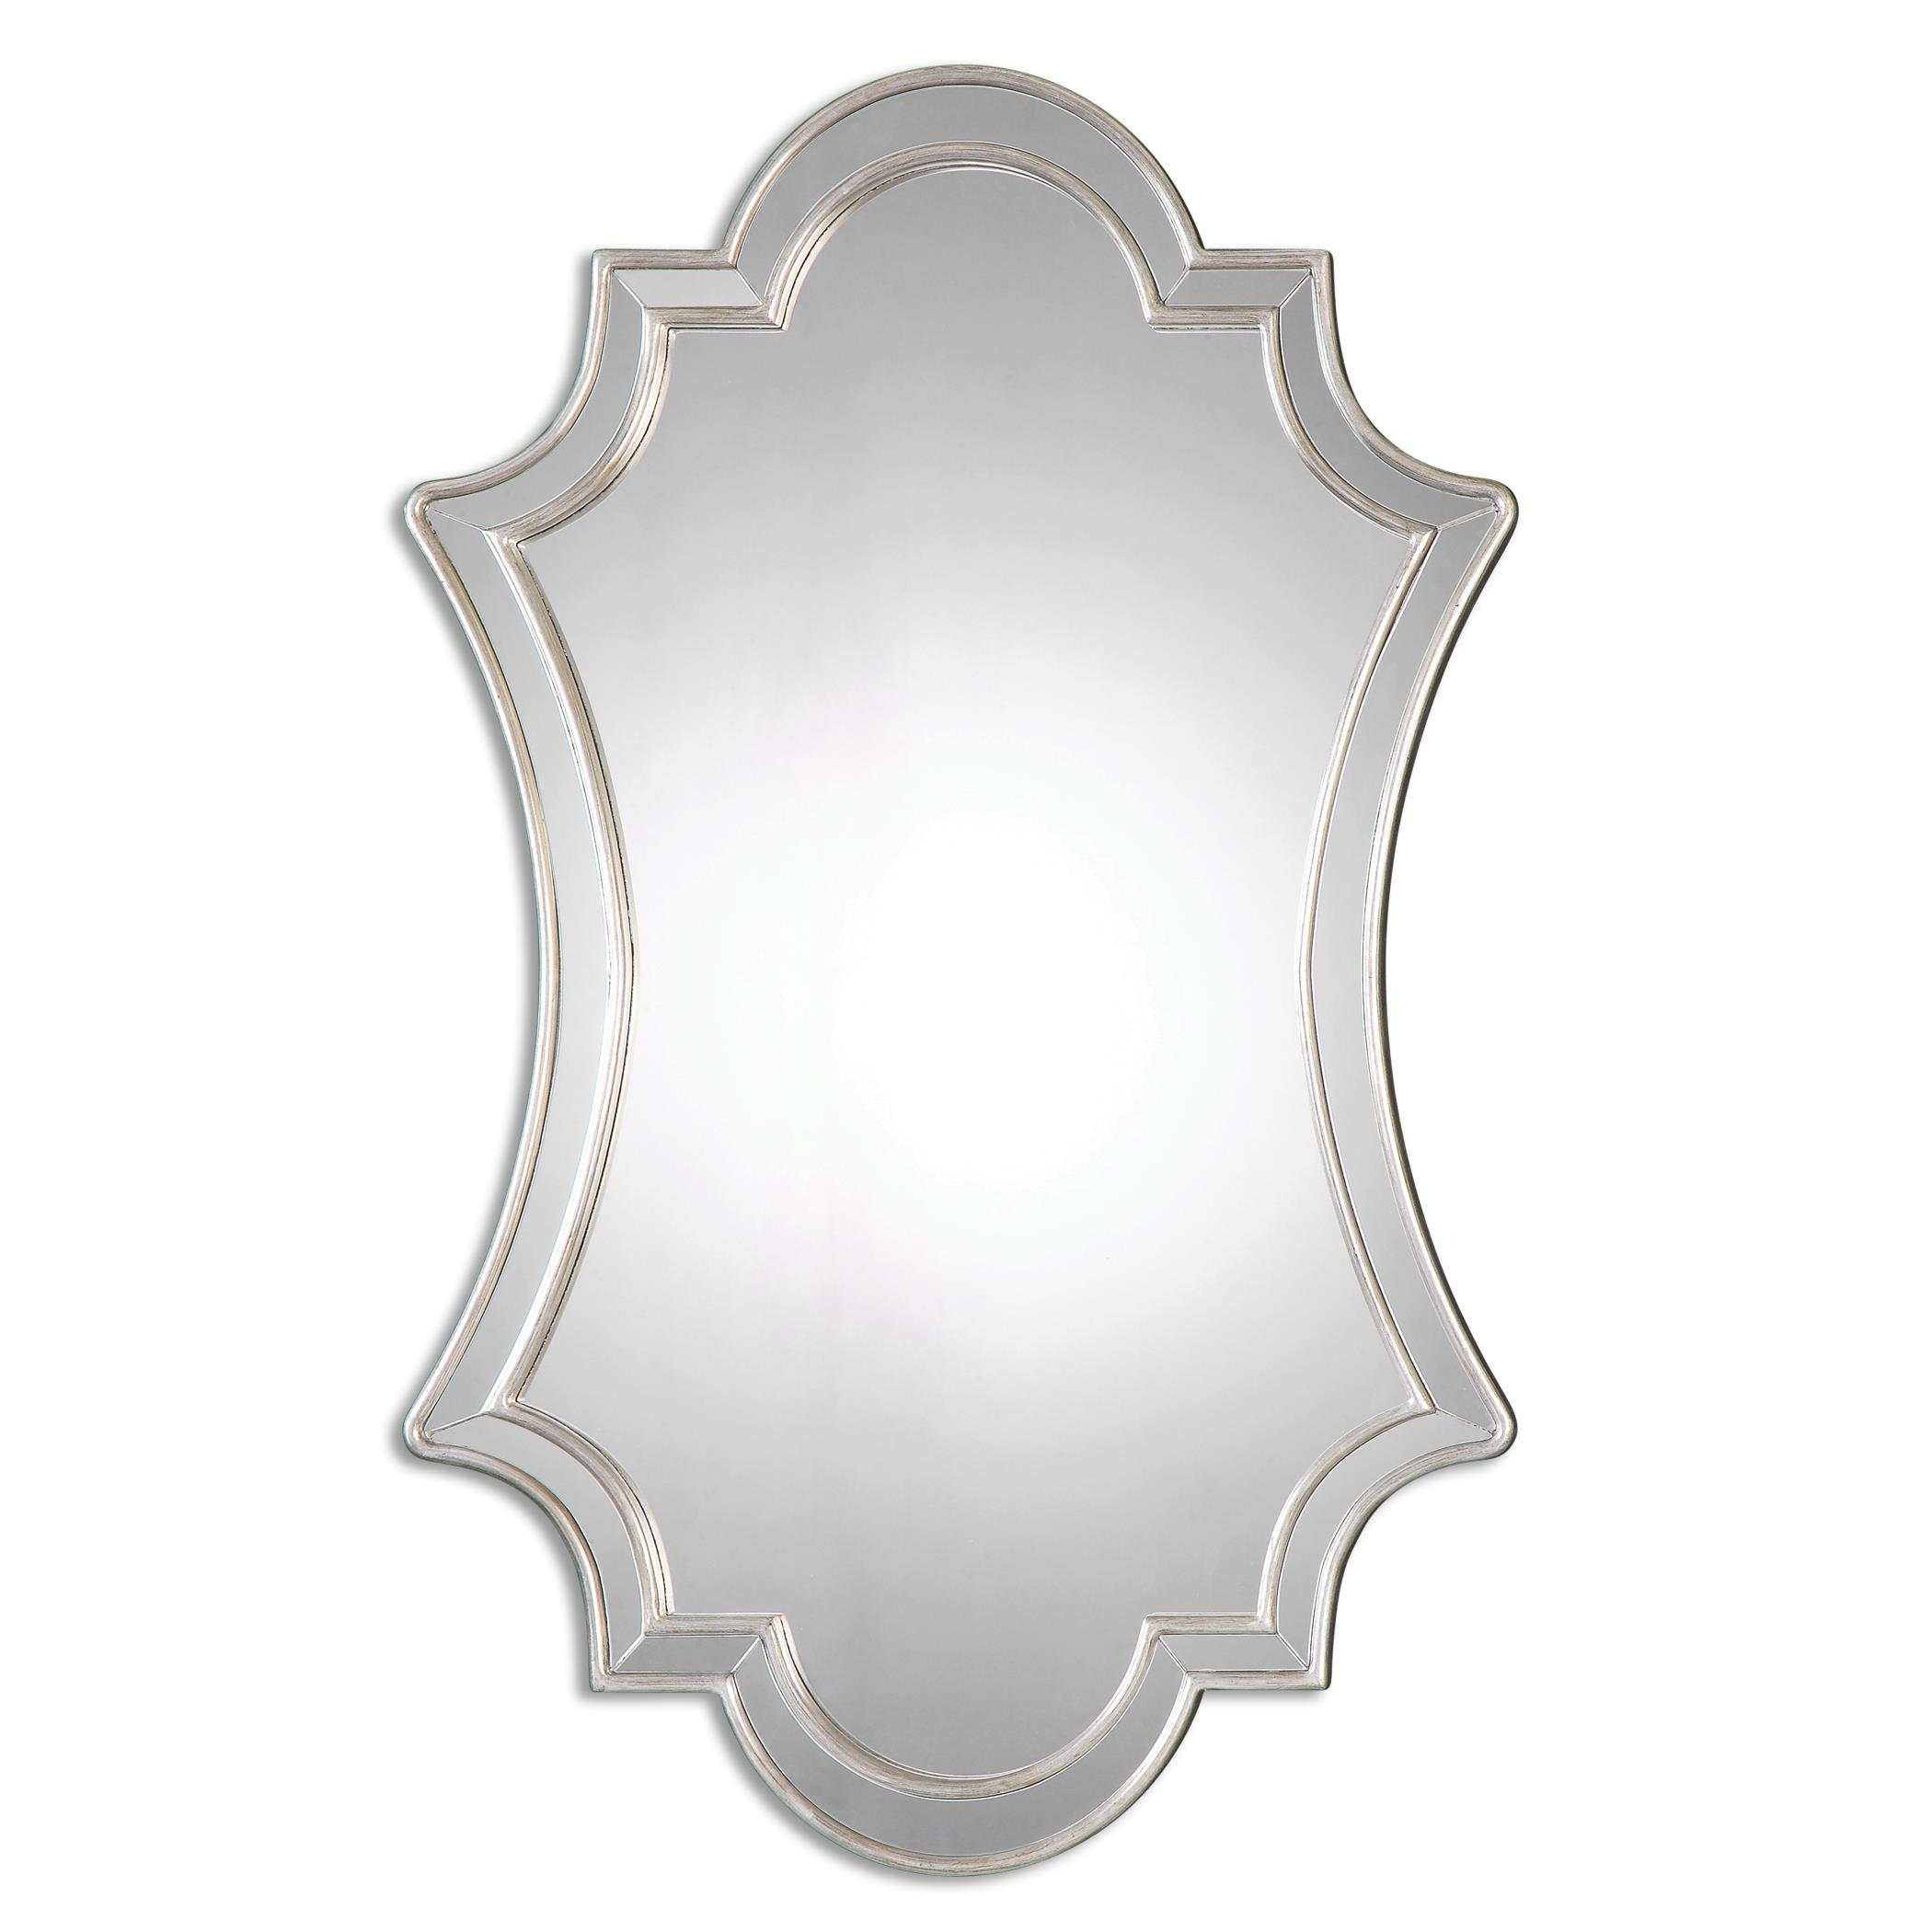 Uttermost Mirrors Elara Antiqued Silver Wall Mirror - Item Number: 08134